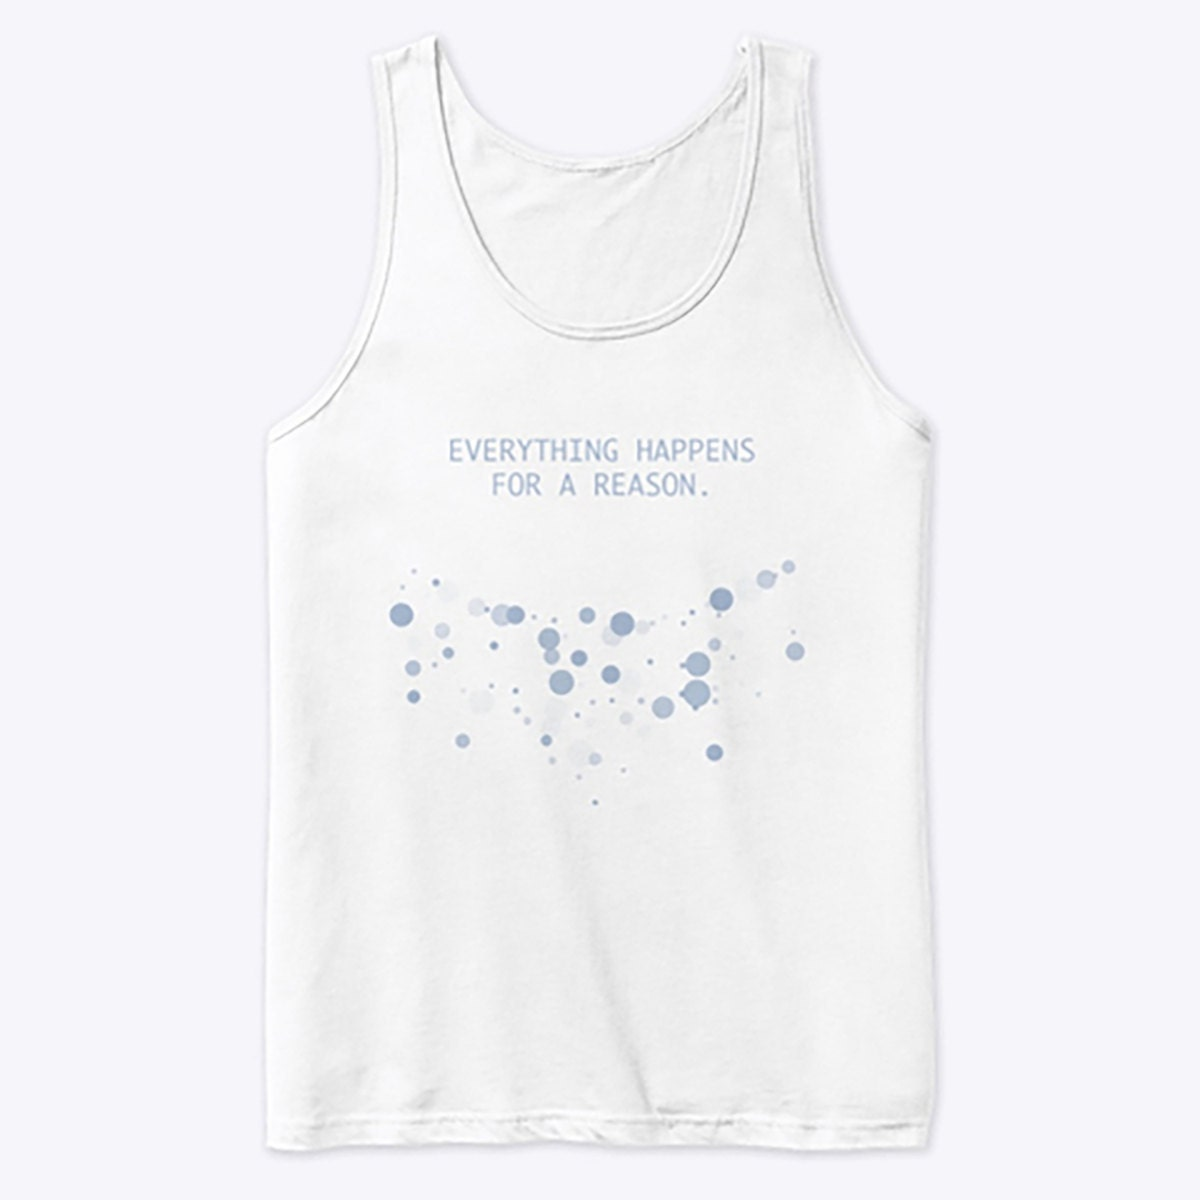 https://teespring.com/everything-happens-f-june-2020?tsmac=store&tsmic=wishes-since-2019&pid=117&cid=5800